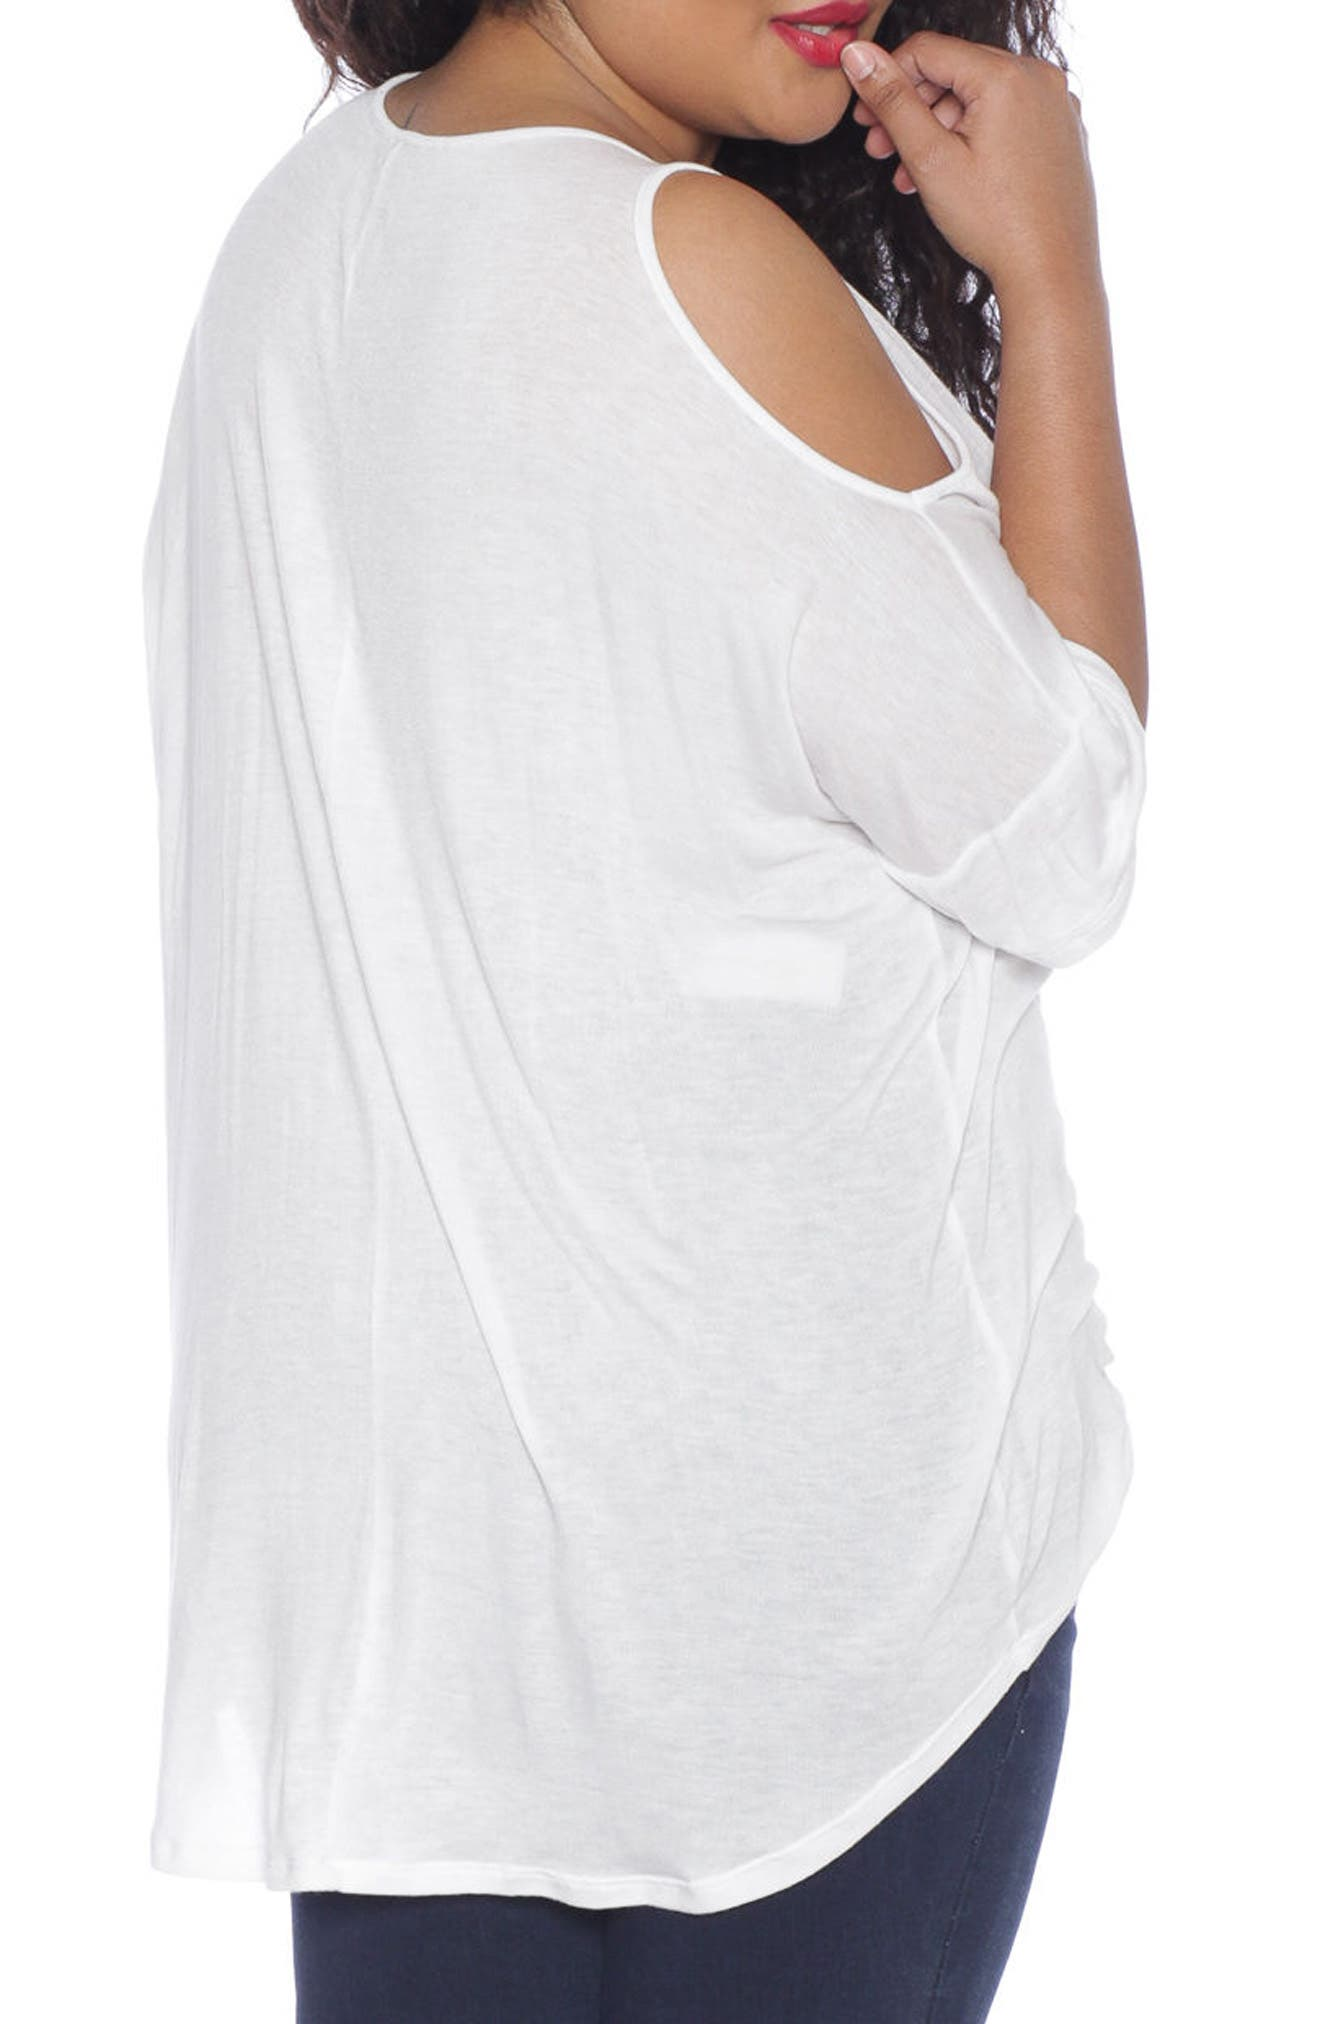 Alternate Image 2  - SLINK Jeans Cold Shoulder Top (Plus Size)